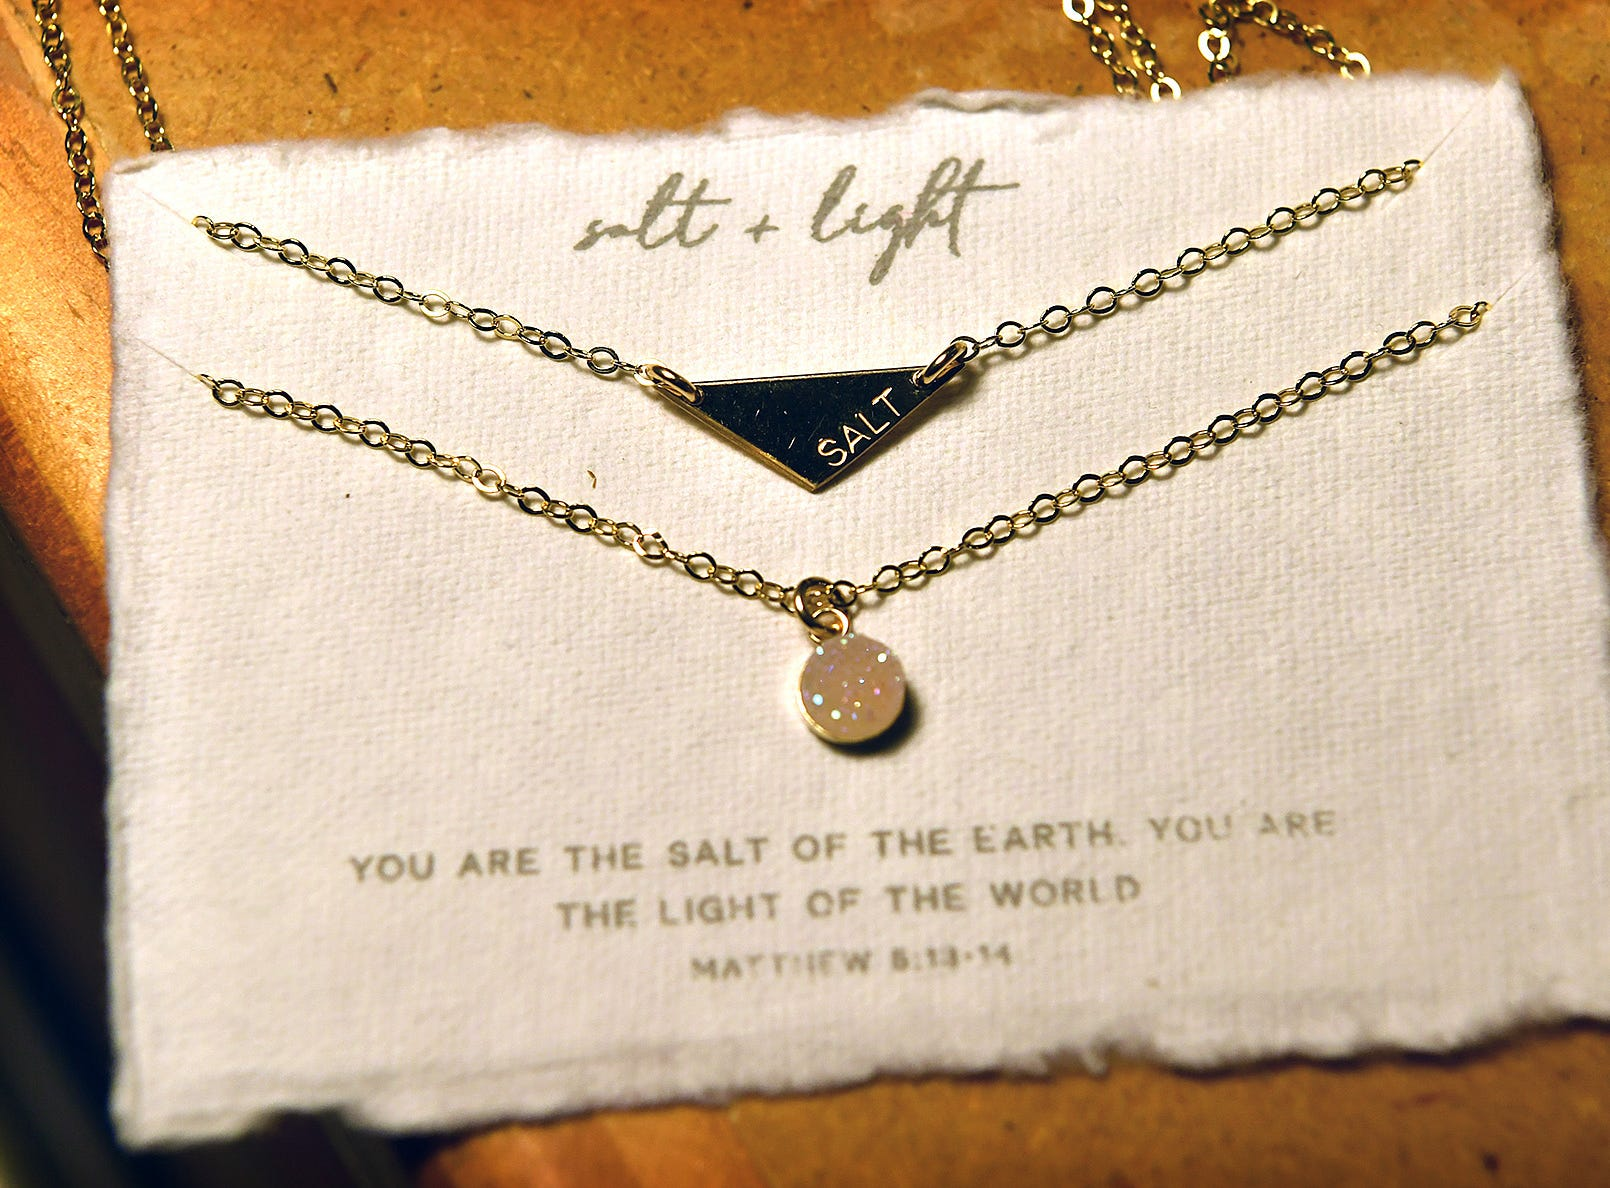 Nichole Kirk's jewelry designs are delicate, faith-based pieces accompanied by a Bible verse printed on hand-made paper.